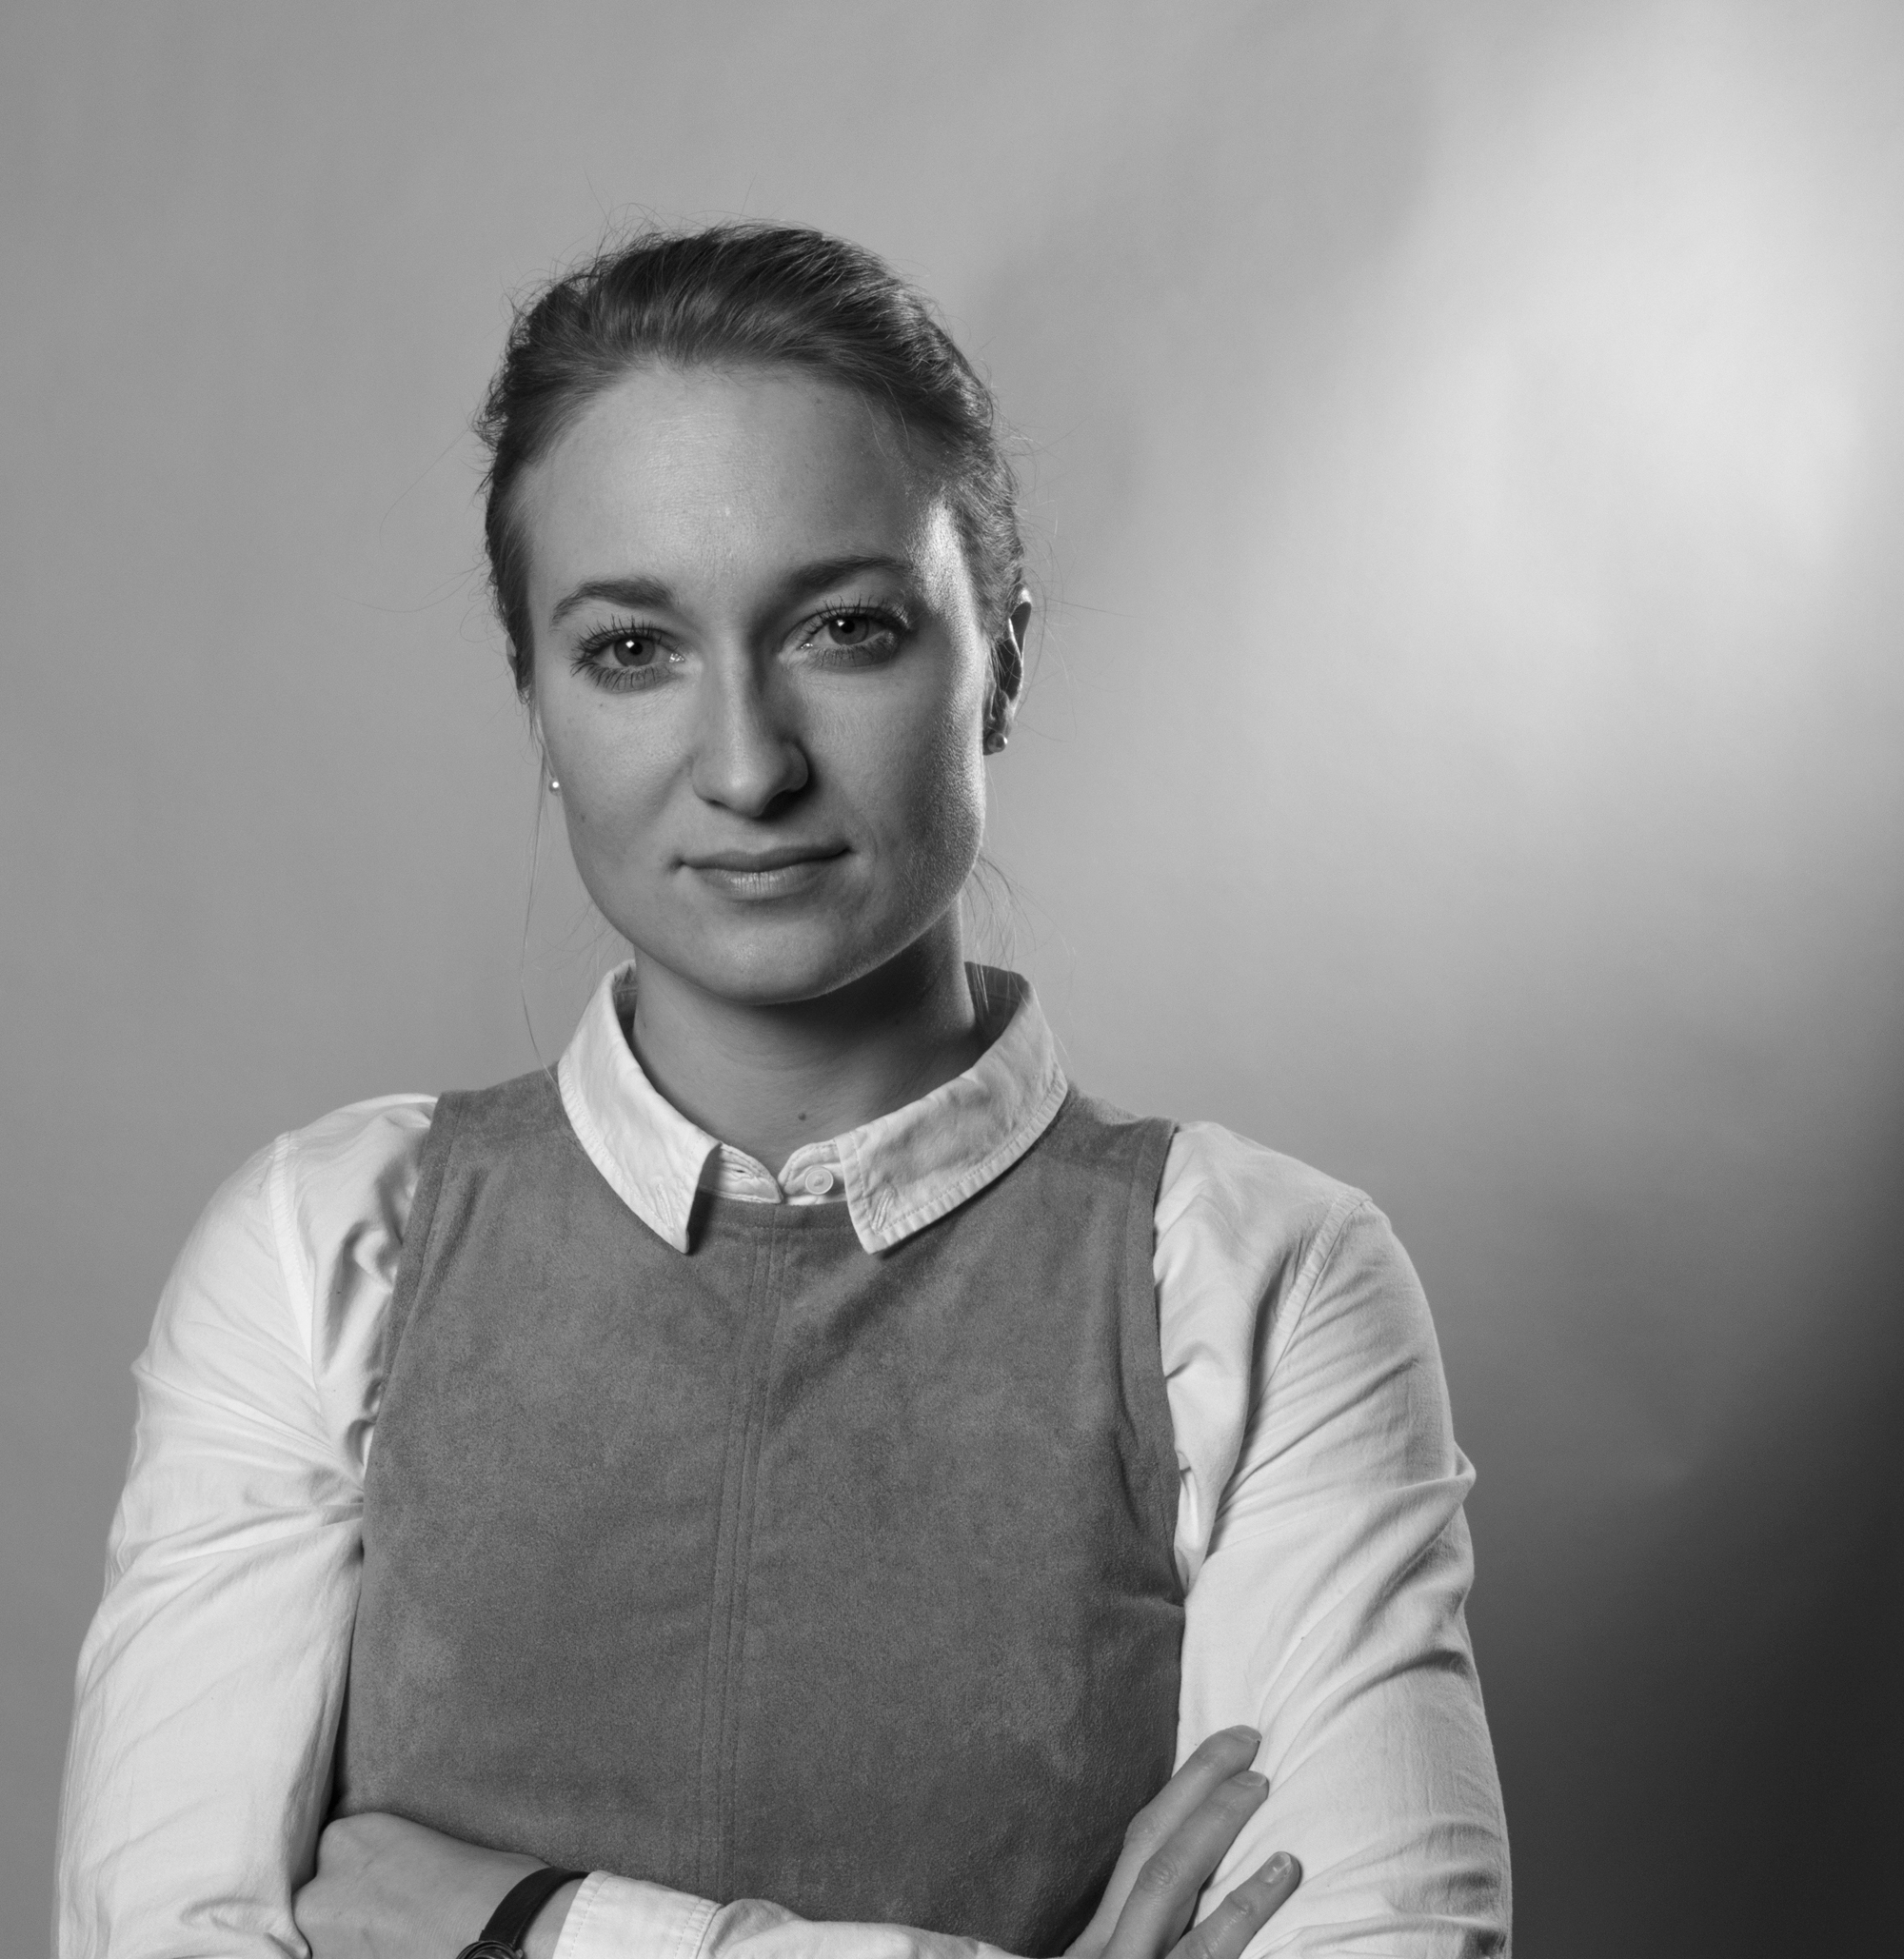 Portrait of HR consultant Steffie Lund